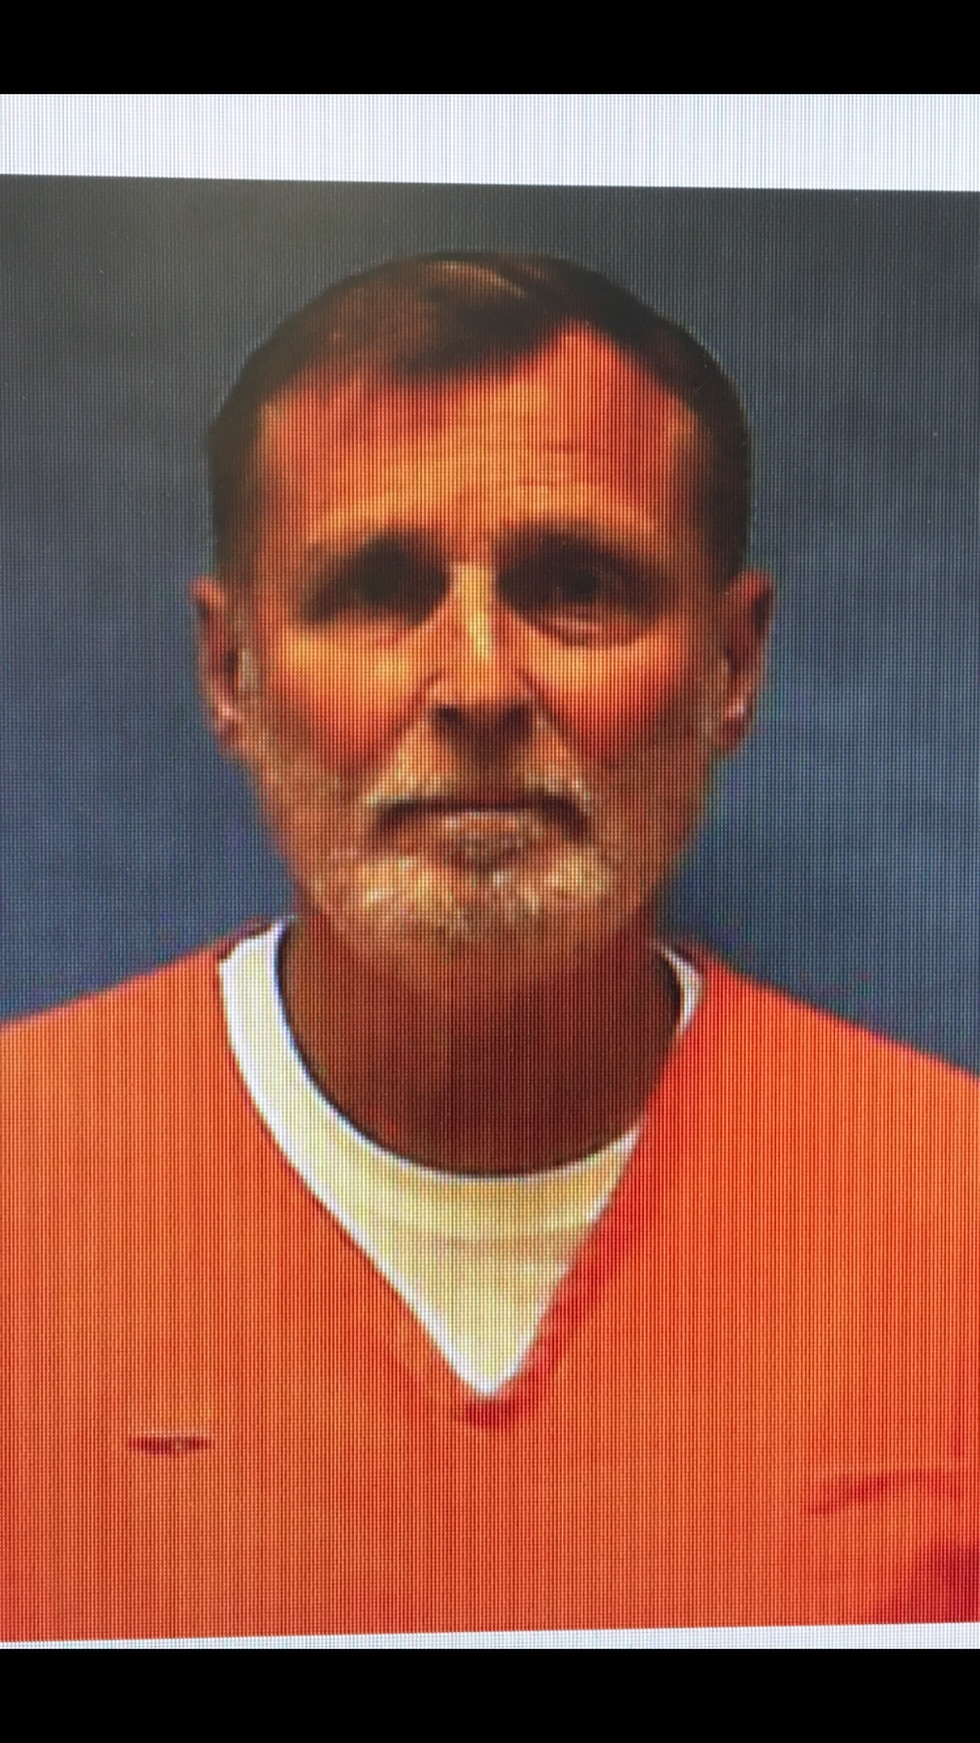 56 year old Glen Rogers has been on Florida's death row for 22 years convicted of murdering two...